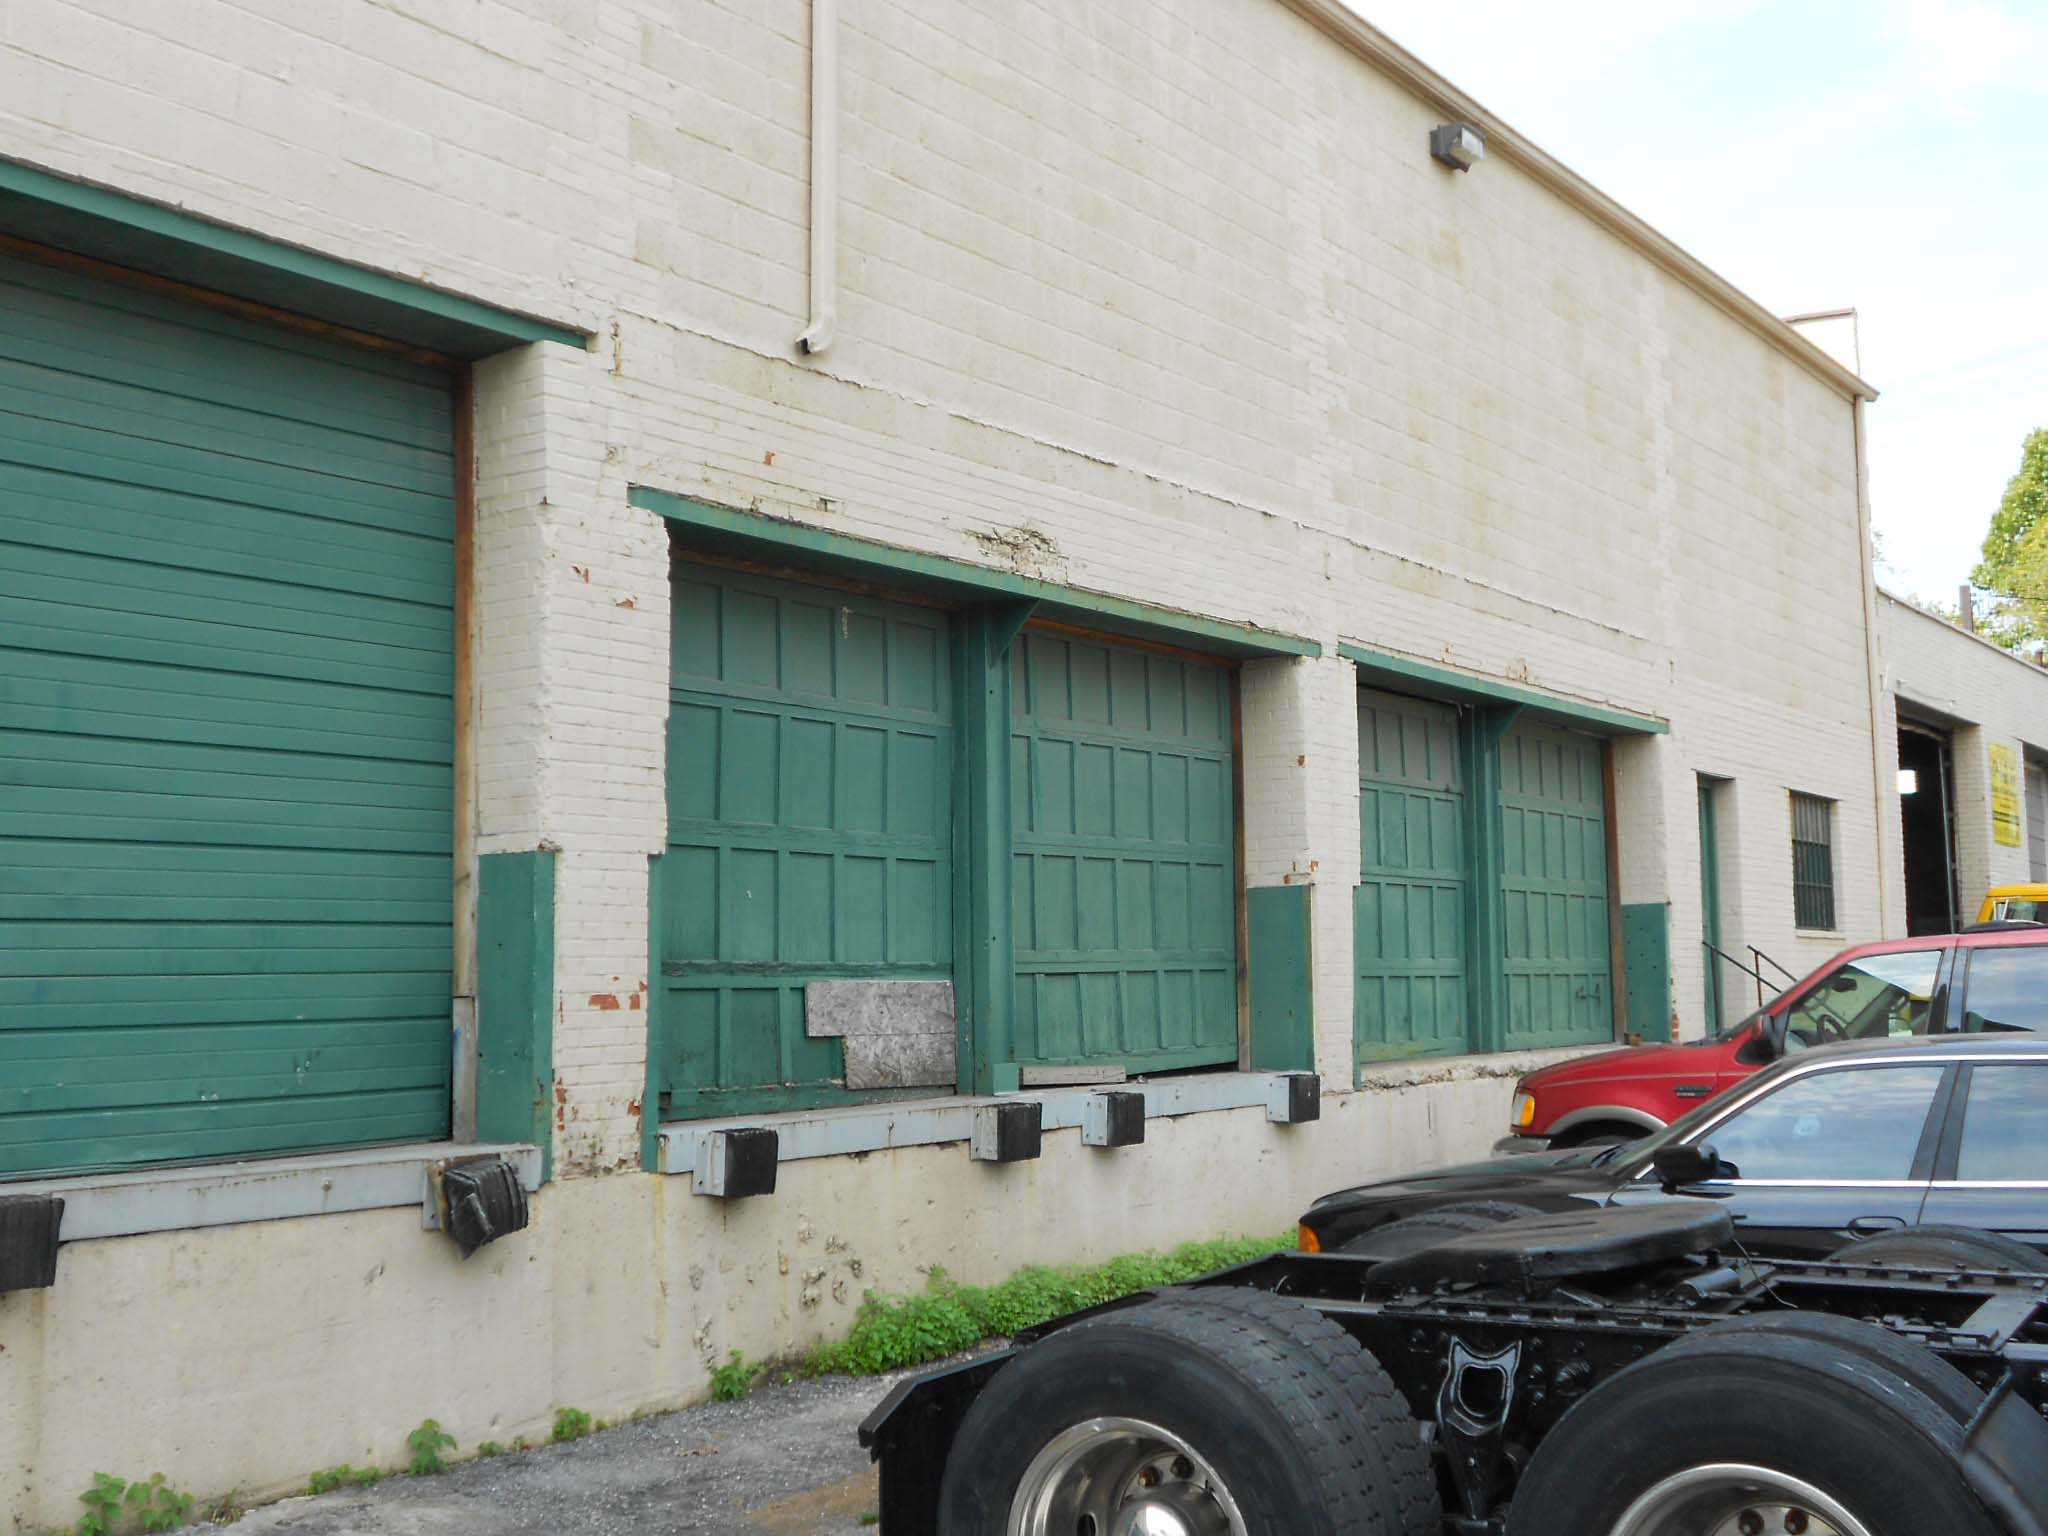 2800 Annapolis Rd:  9,450 sq.ft. Warehouse in South Baltimore just off of 295